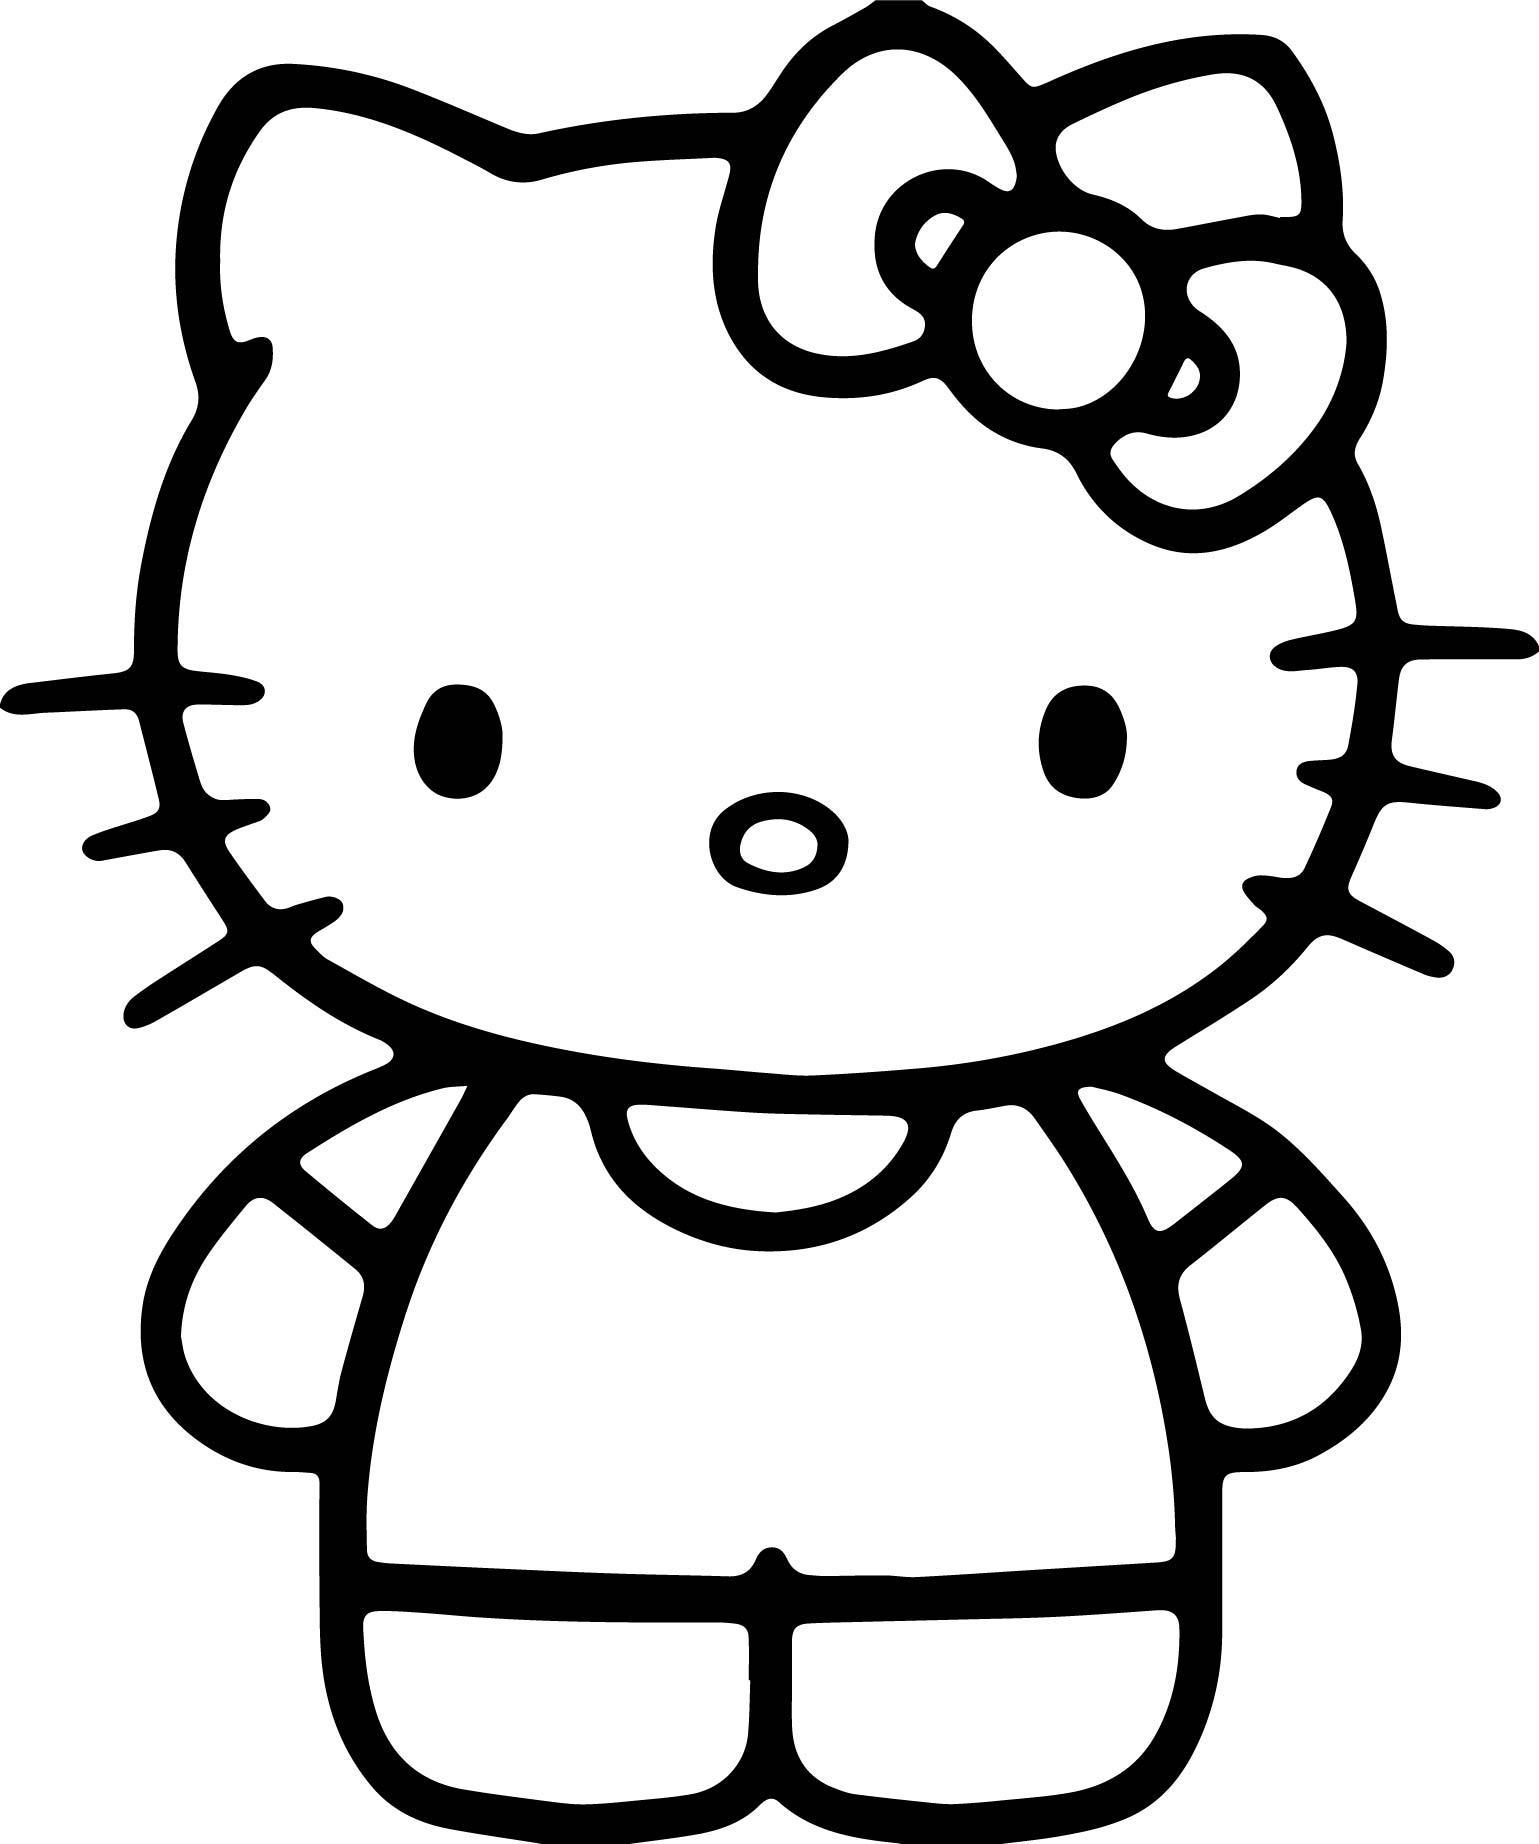 coloring pictures for 3 year olds 3 year old coloring pages free printable 3 year old year coloring pictures for olds 3